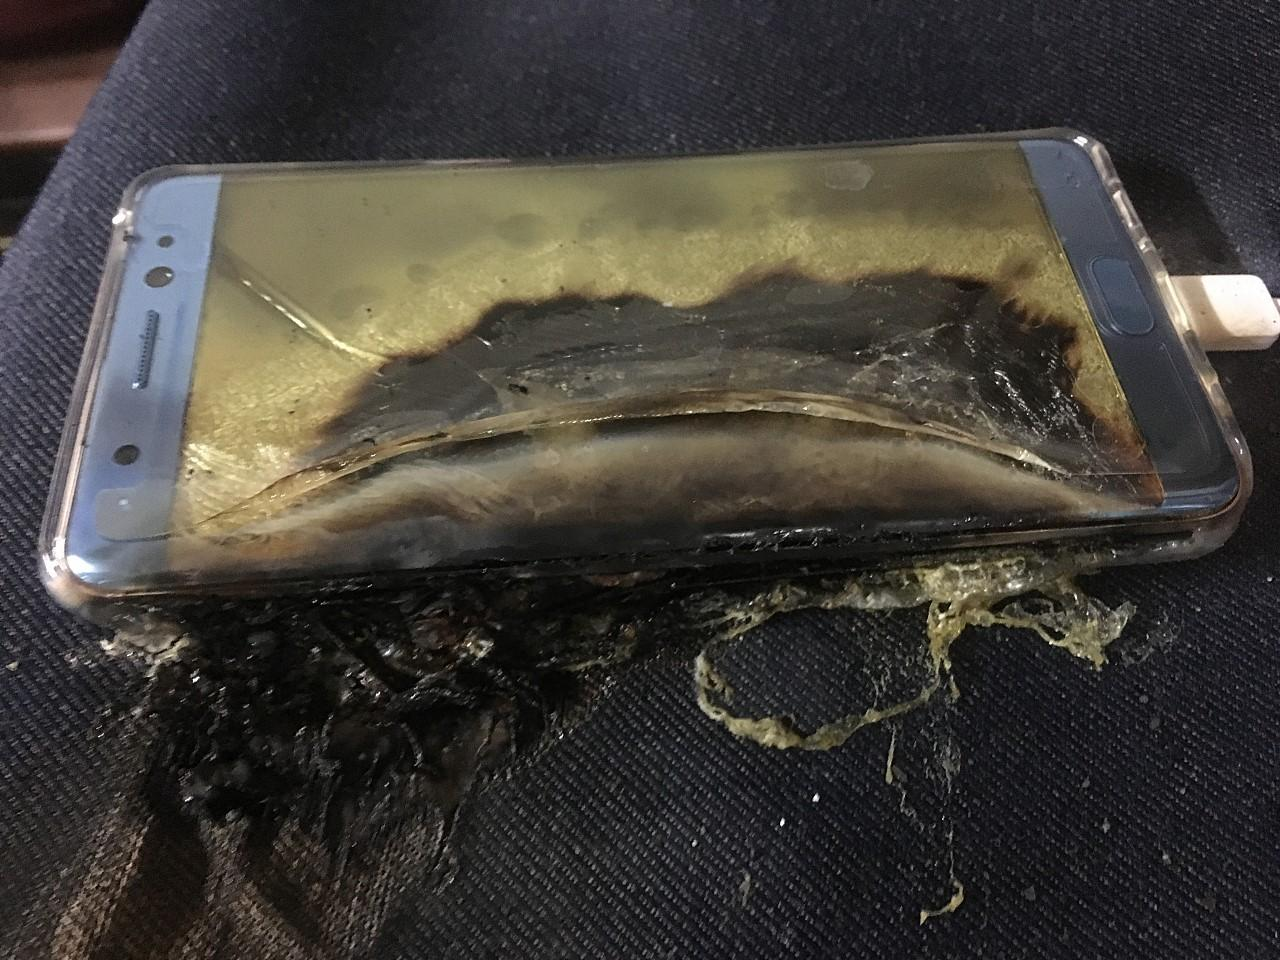 Samsung Galaxy Note 7 incendiado